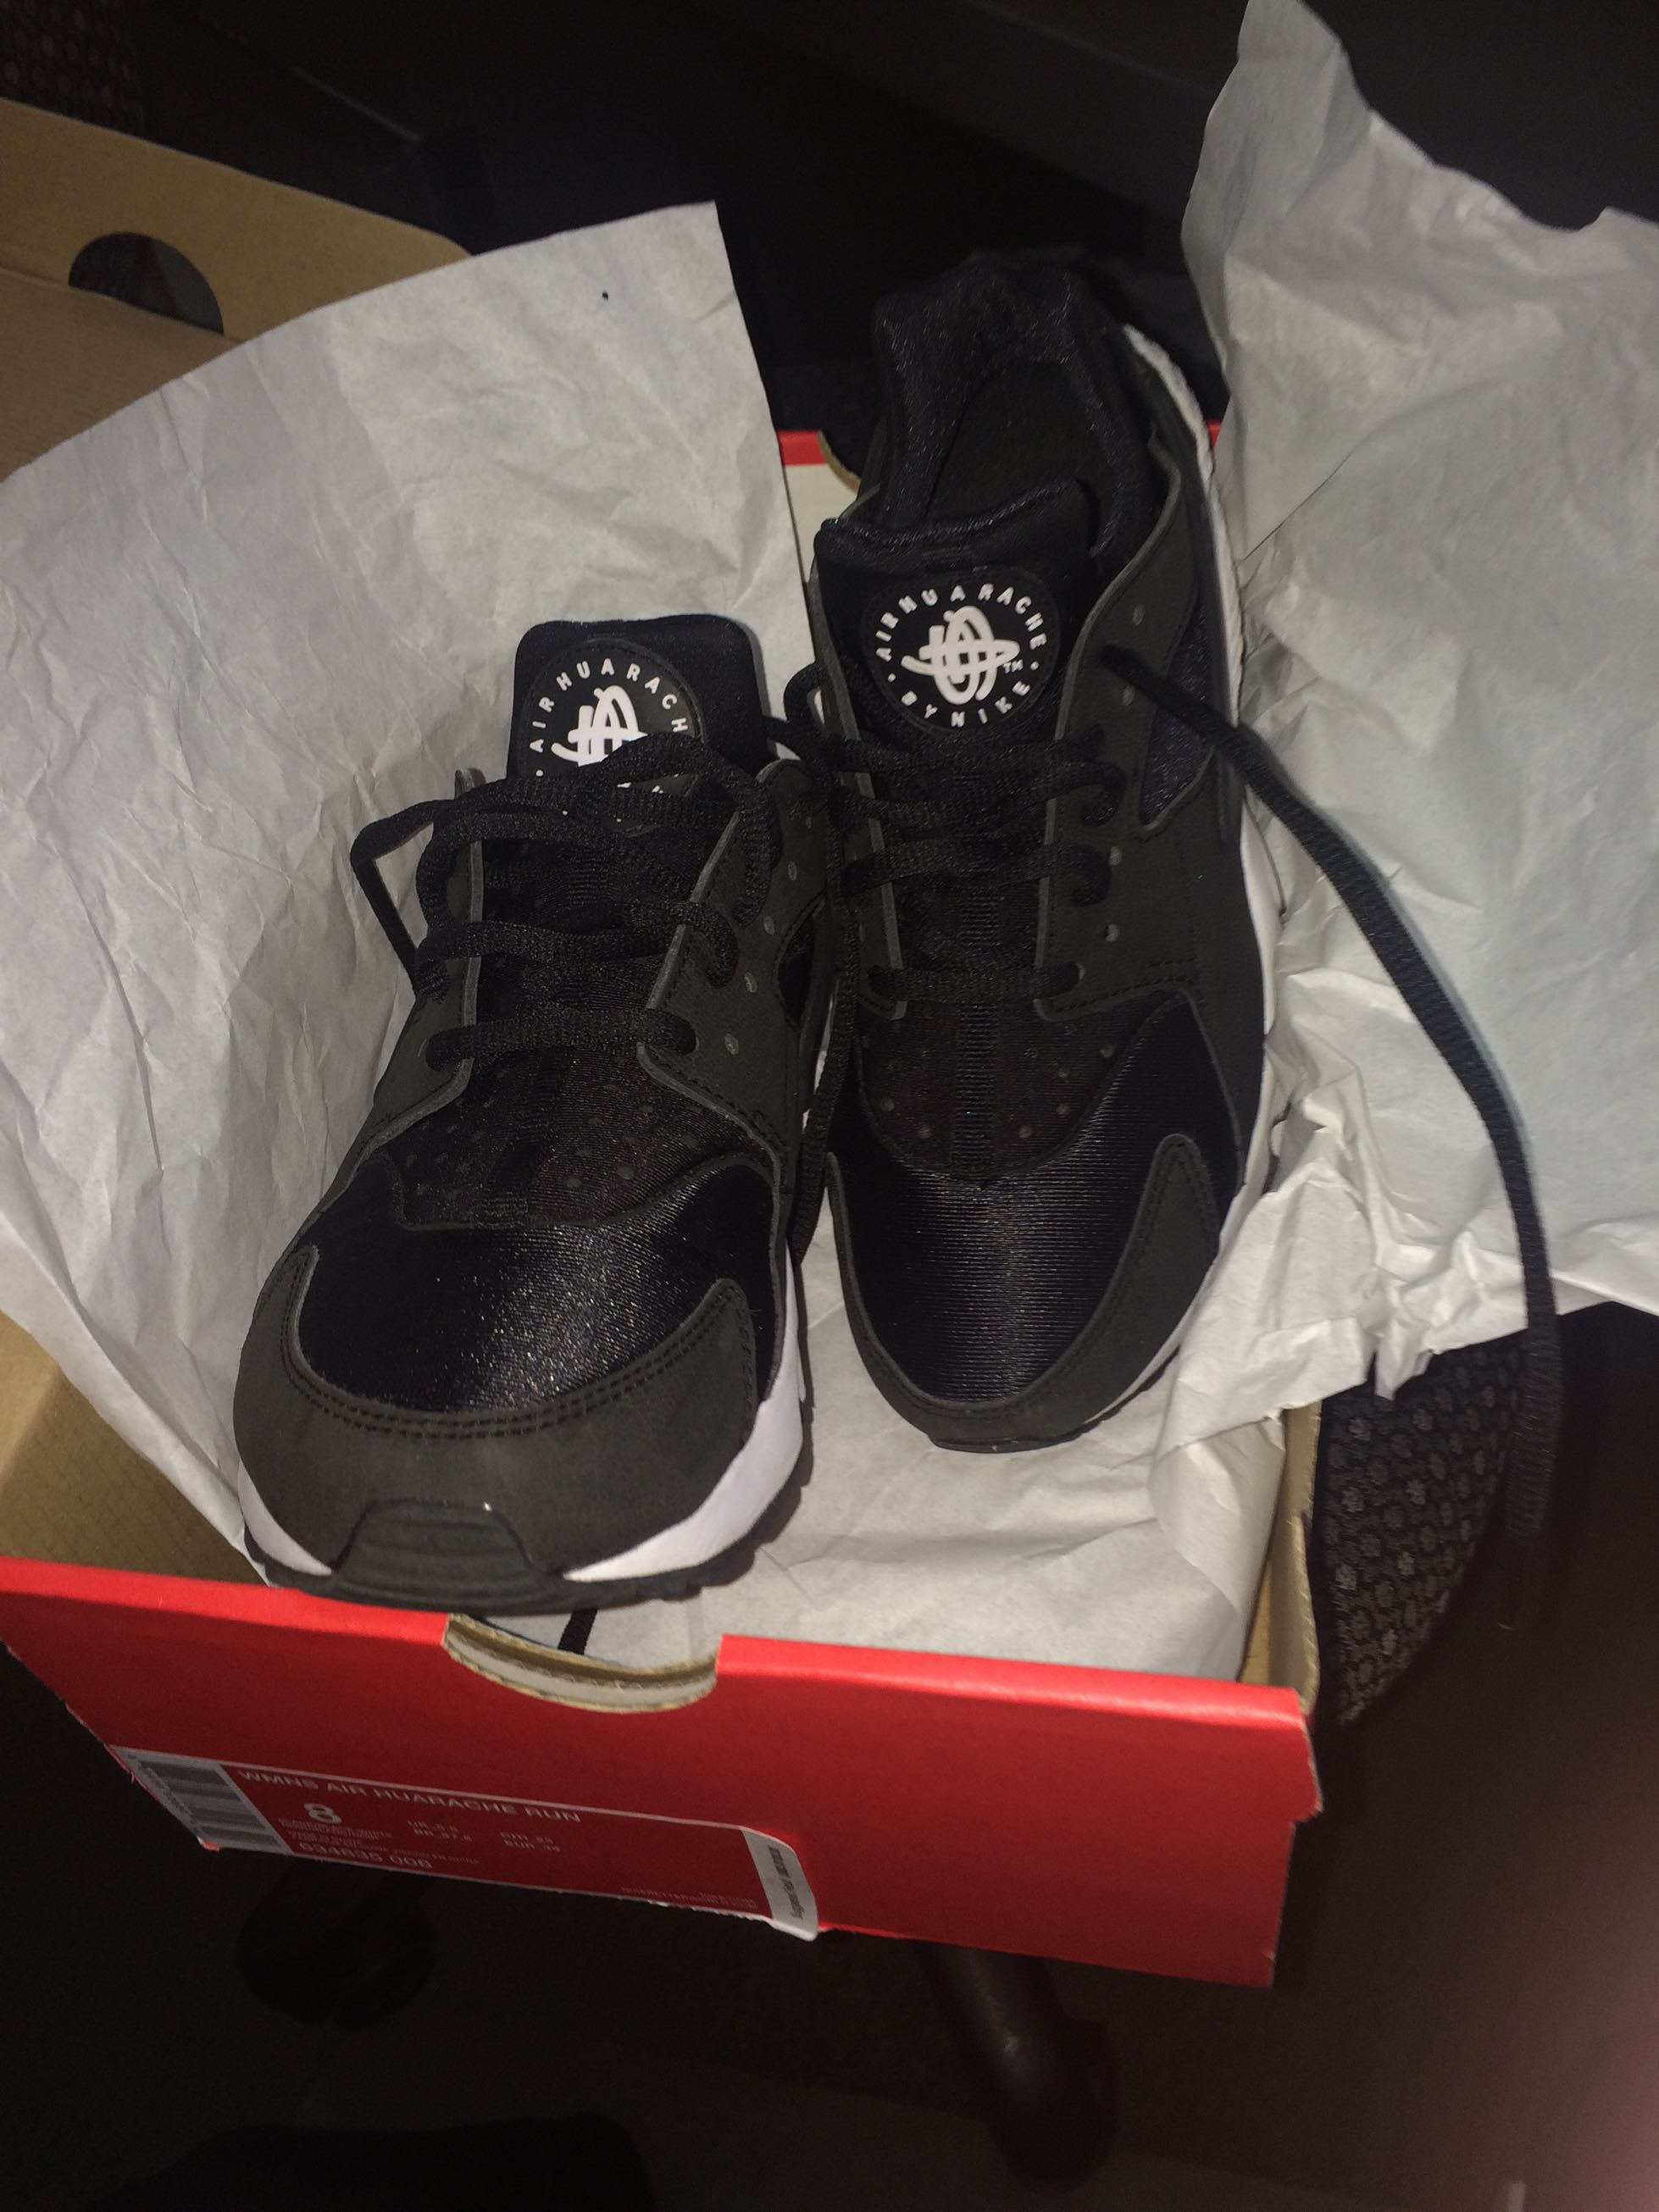 Nike Huaraches size 8. Just like new. This type of shoe runs small ...